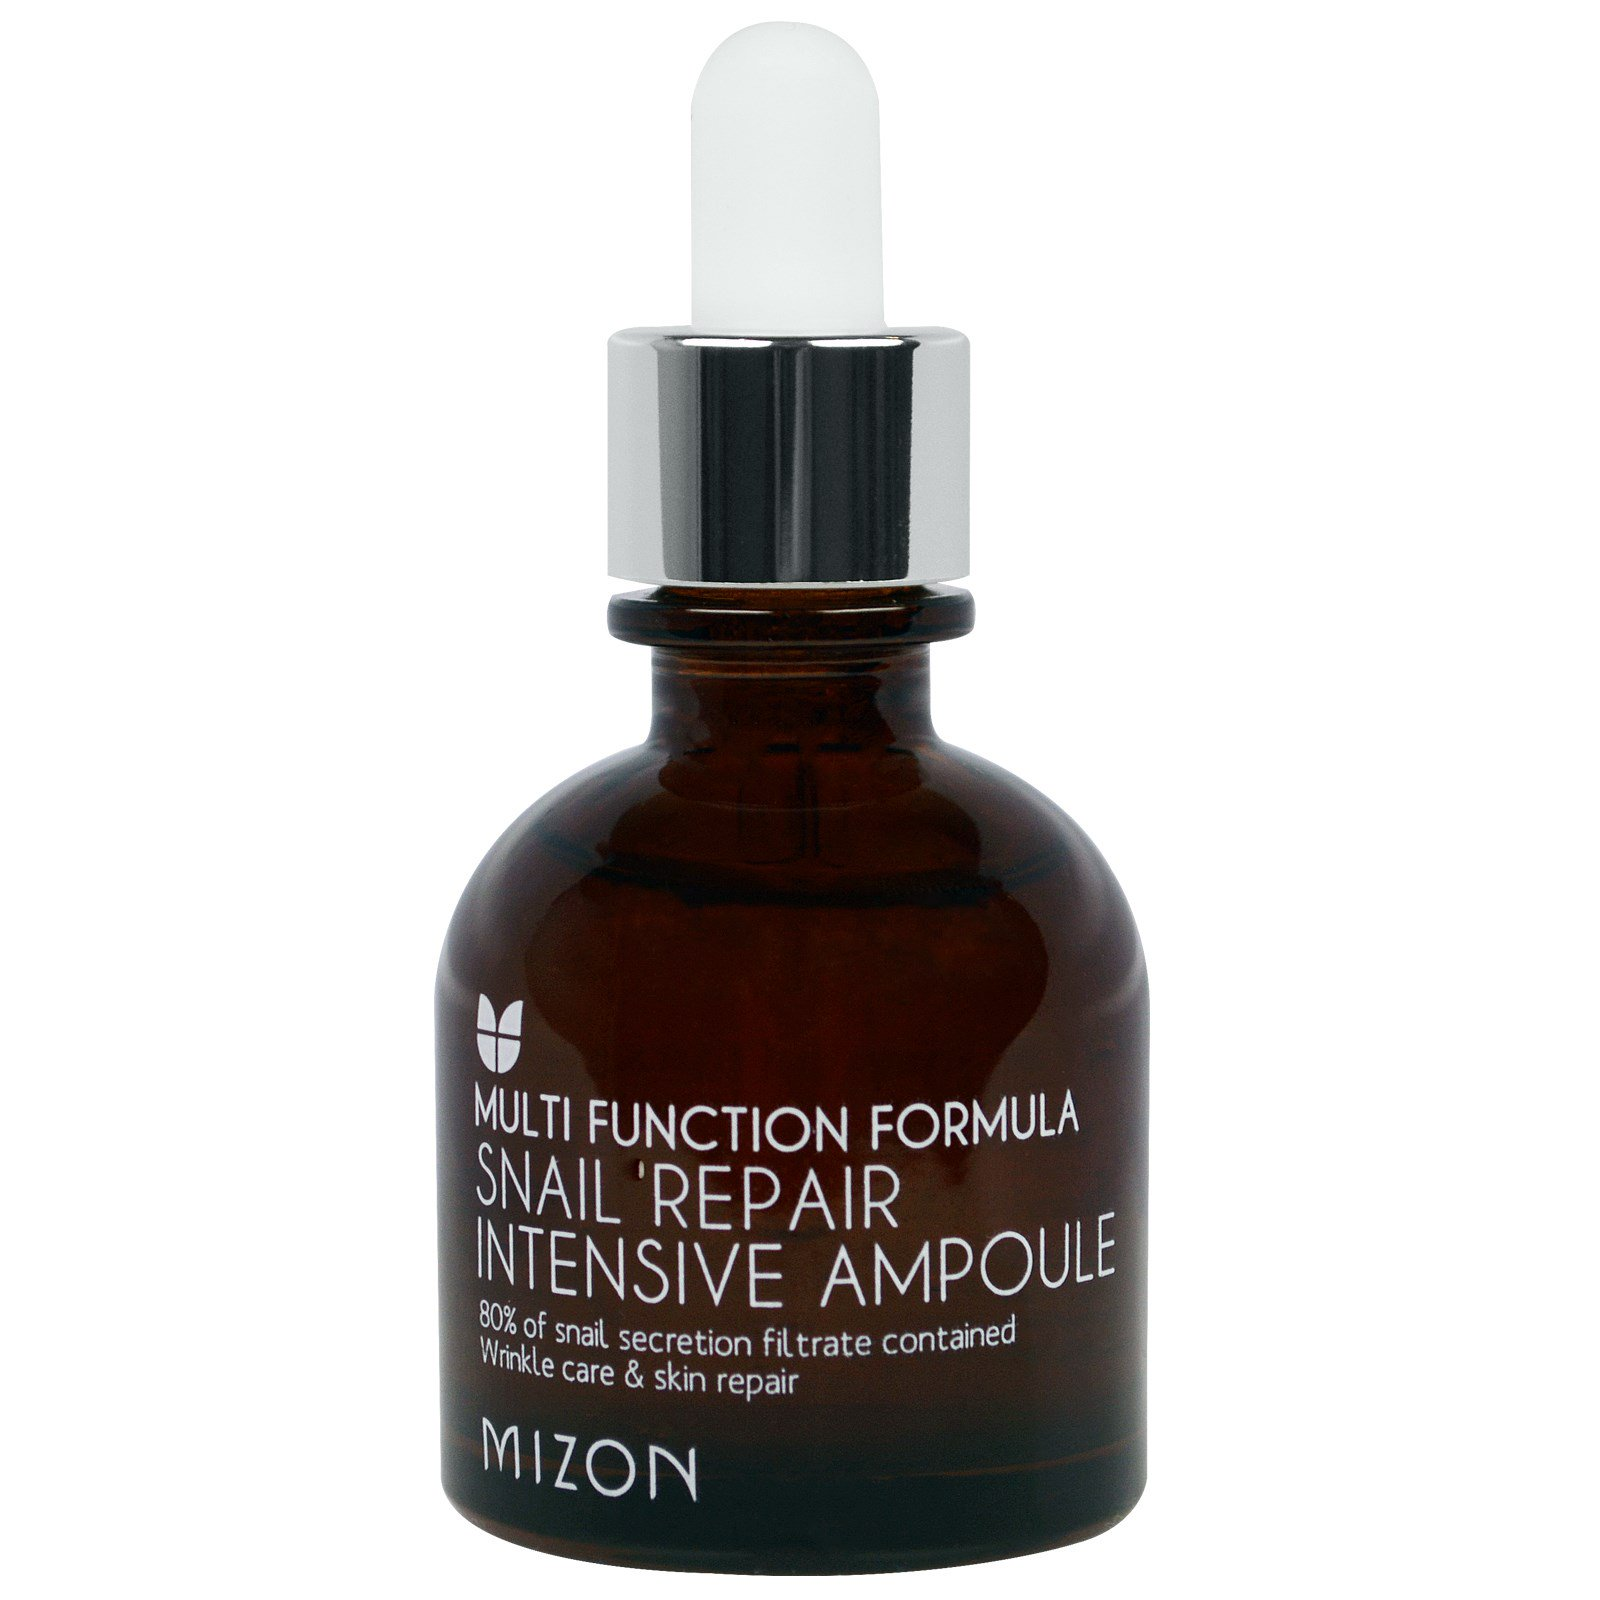 Mizon, Snail Repair Intensive Ampoule, 30 мл (1,01 жидких унций)